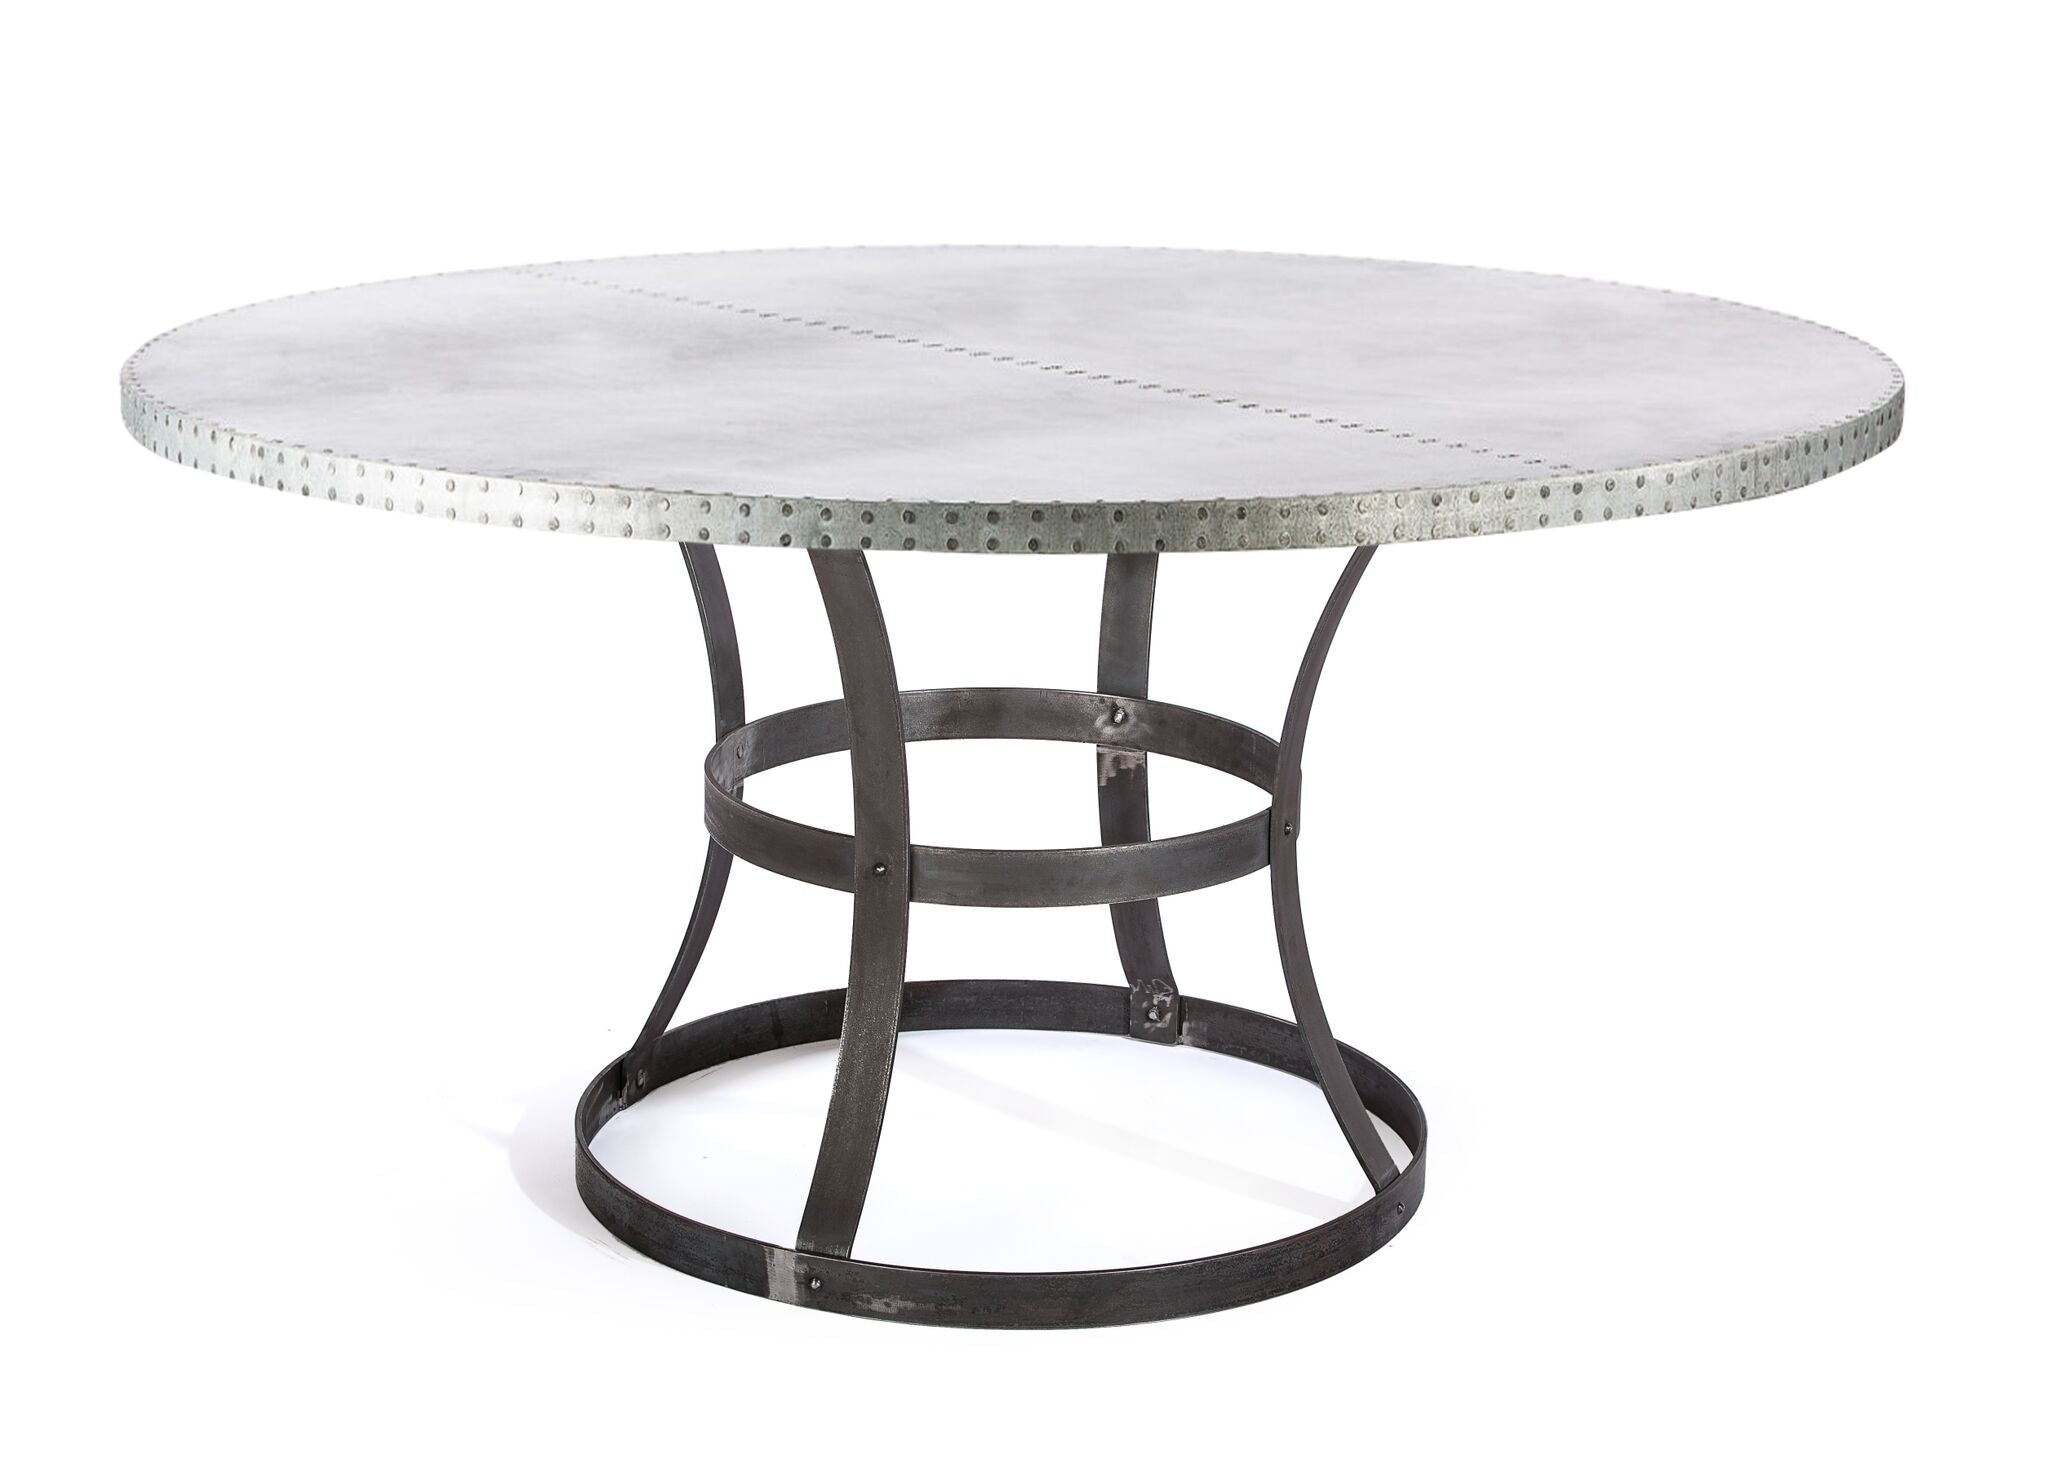 MADERA TABLE kingston-krafts-zinc-tables.